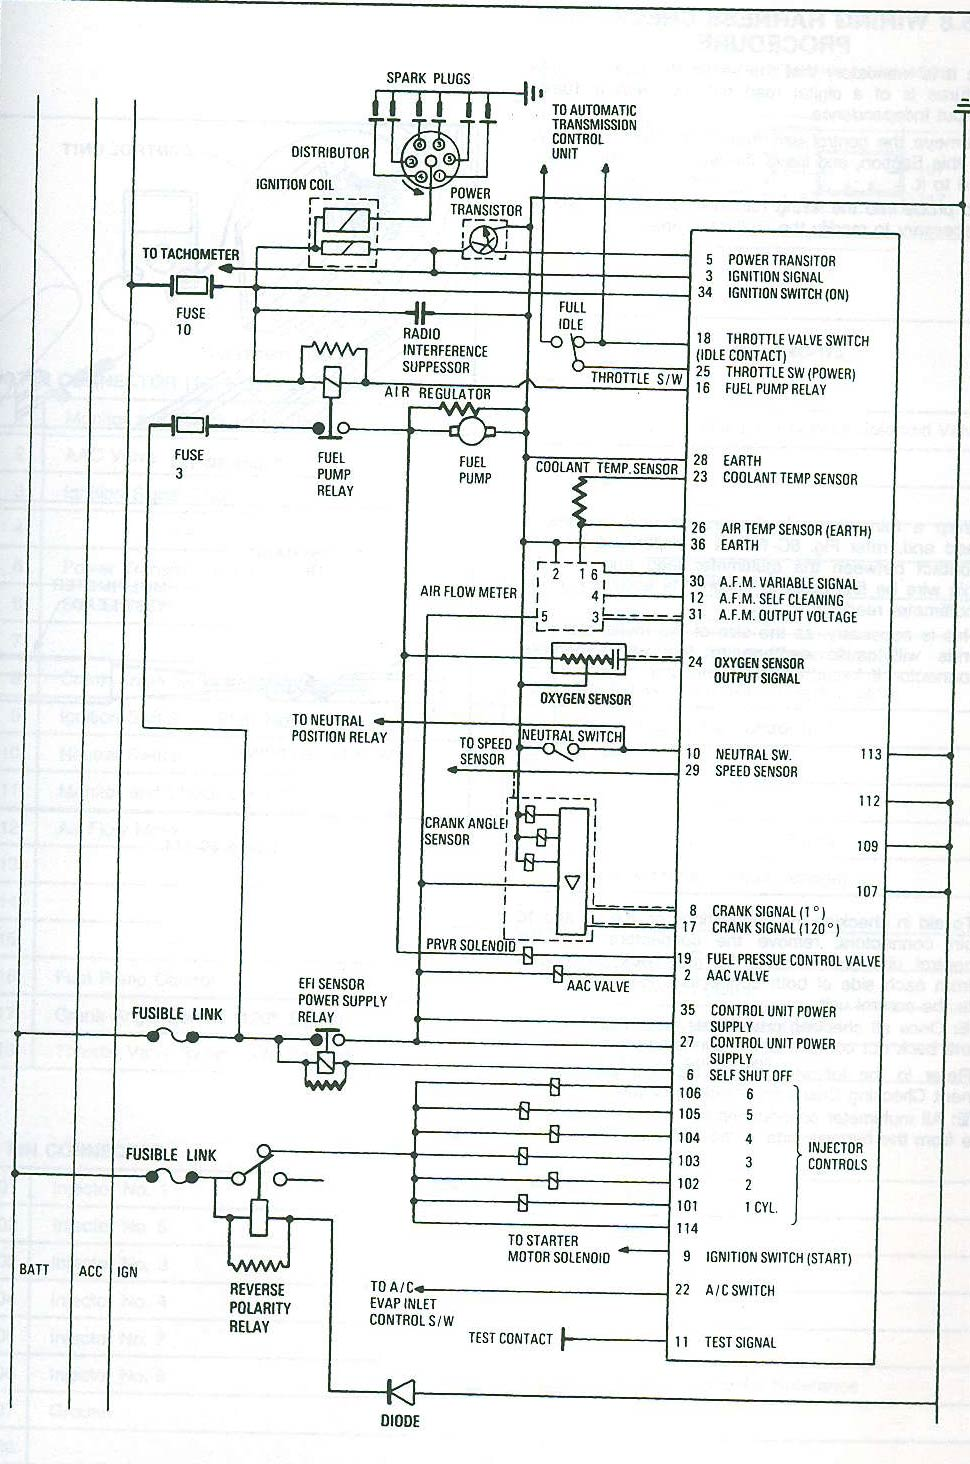 hight resolution of rb20 wiring diagram wiring diagram detailed 1990 240sx egr diagram rb20det engine diagram wiring library ladder